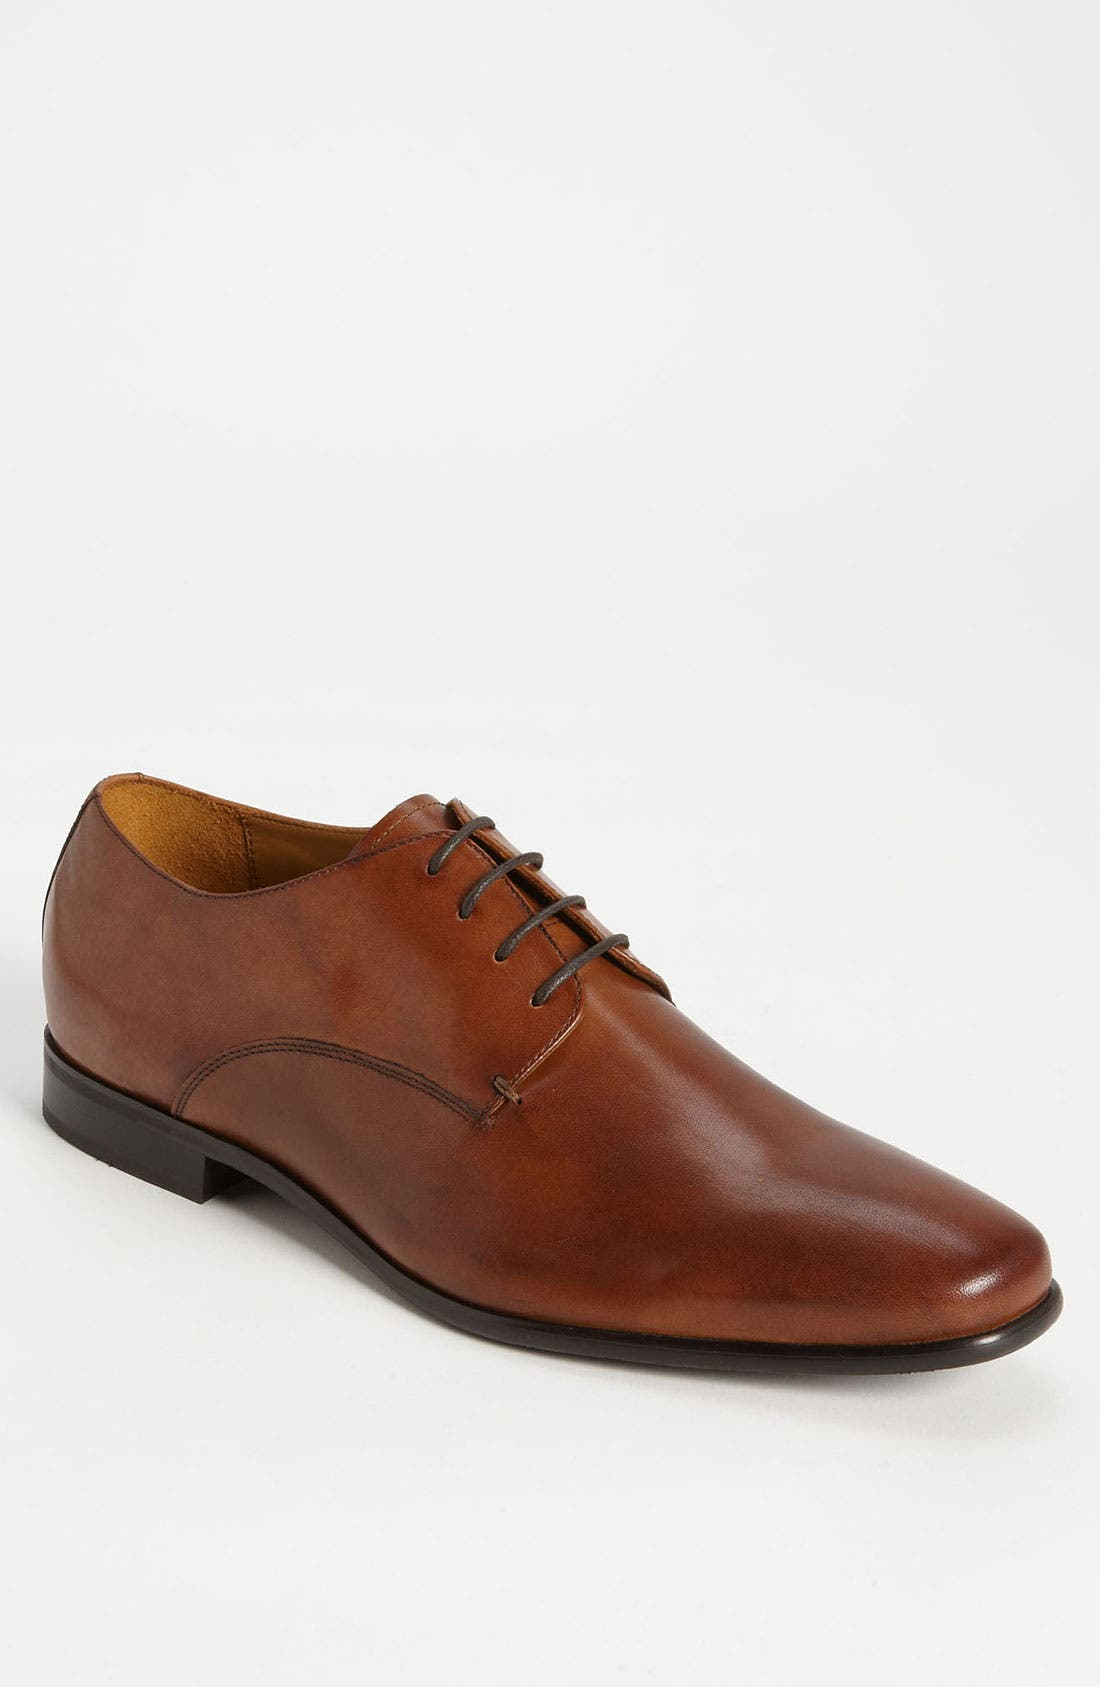 GORDON RUSH,                             'Manning' Derby,                             Main thumbnail 1, color,                             COGNAC LEATHER